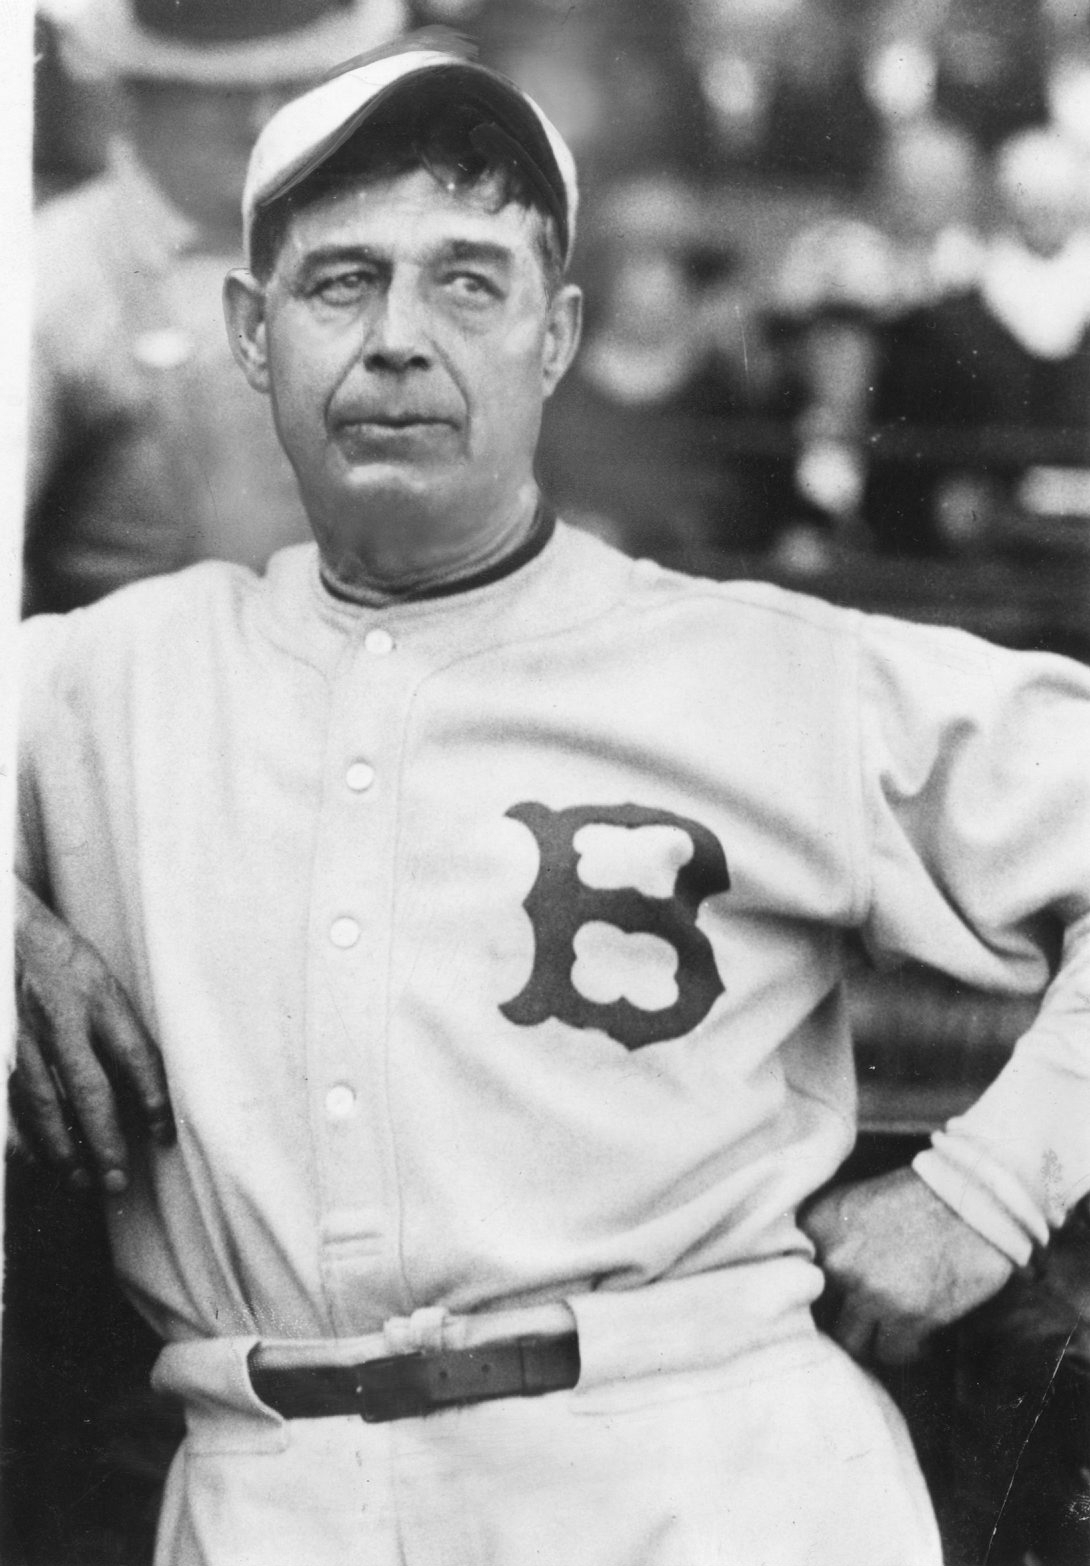 Hall of Fame third baseman Jimmy Collins played in the first World Series for the Red Sox.